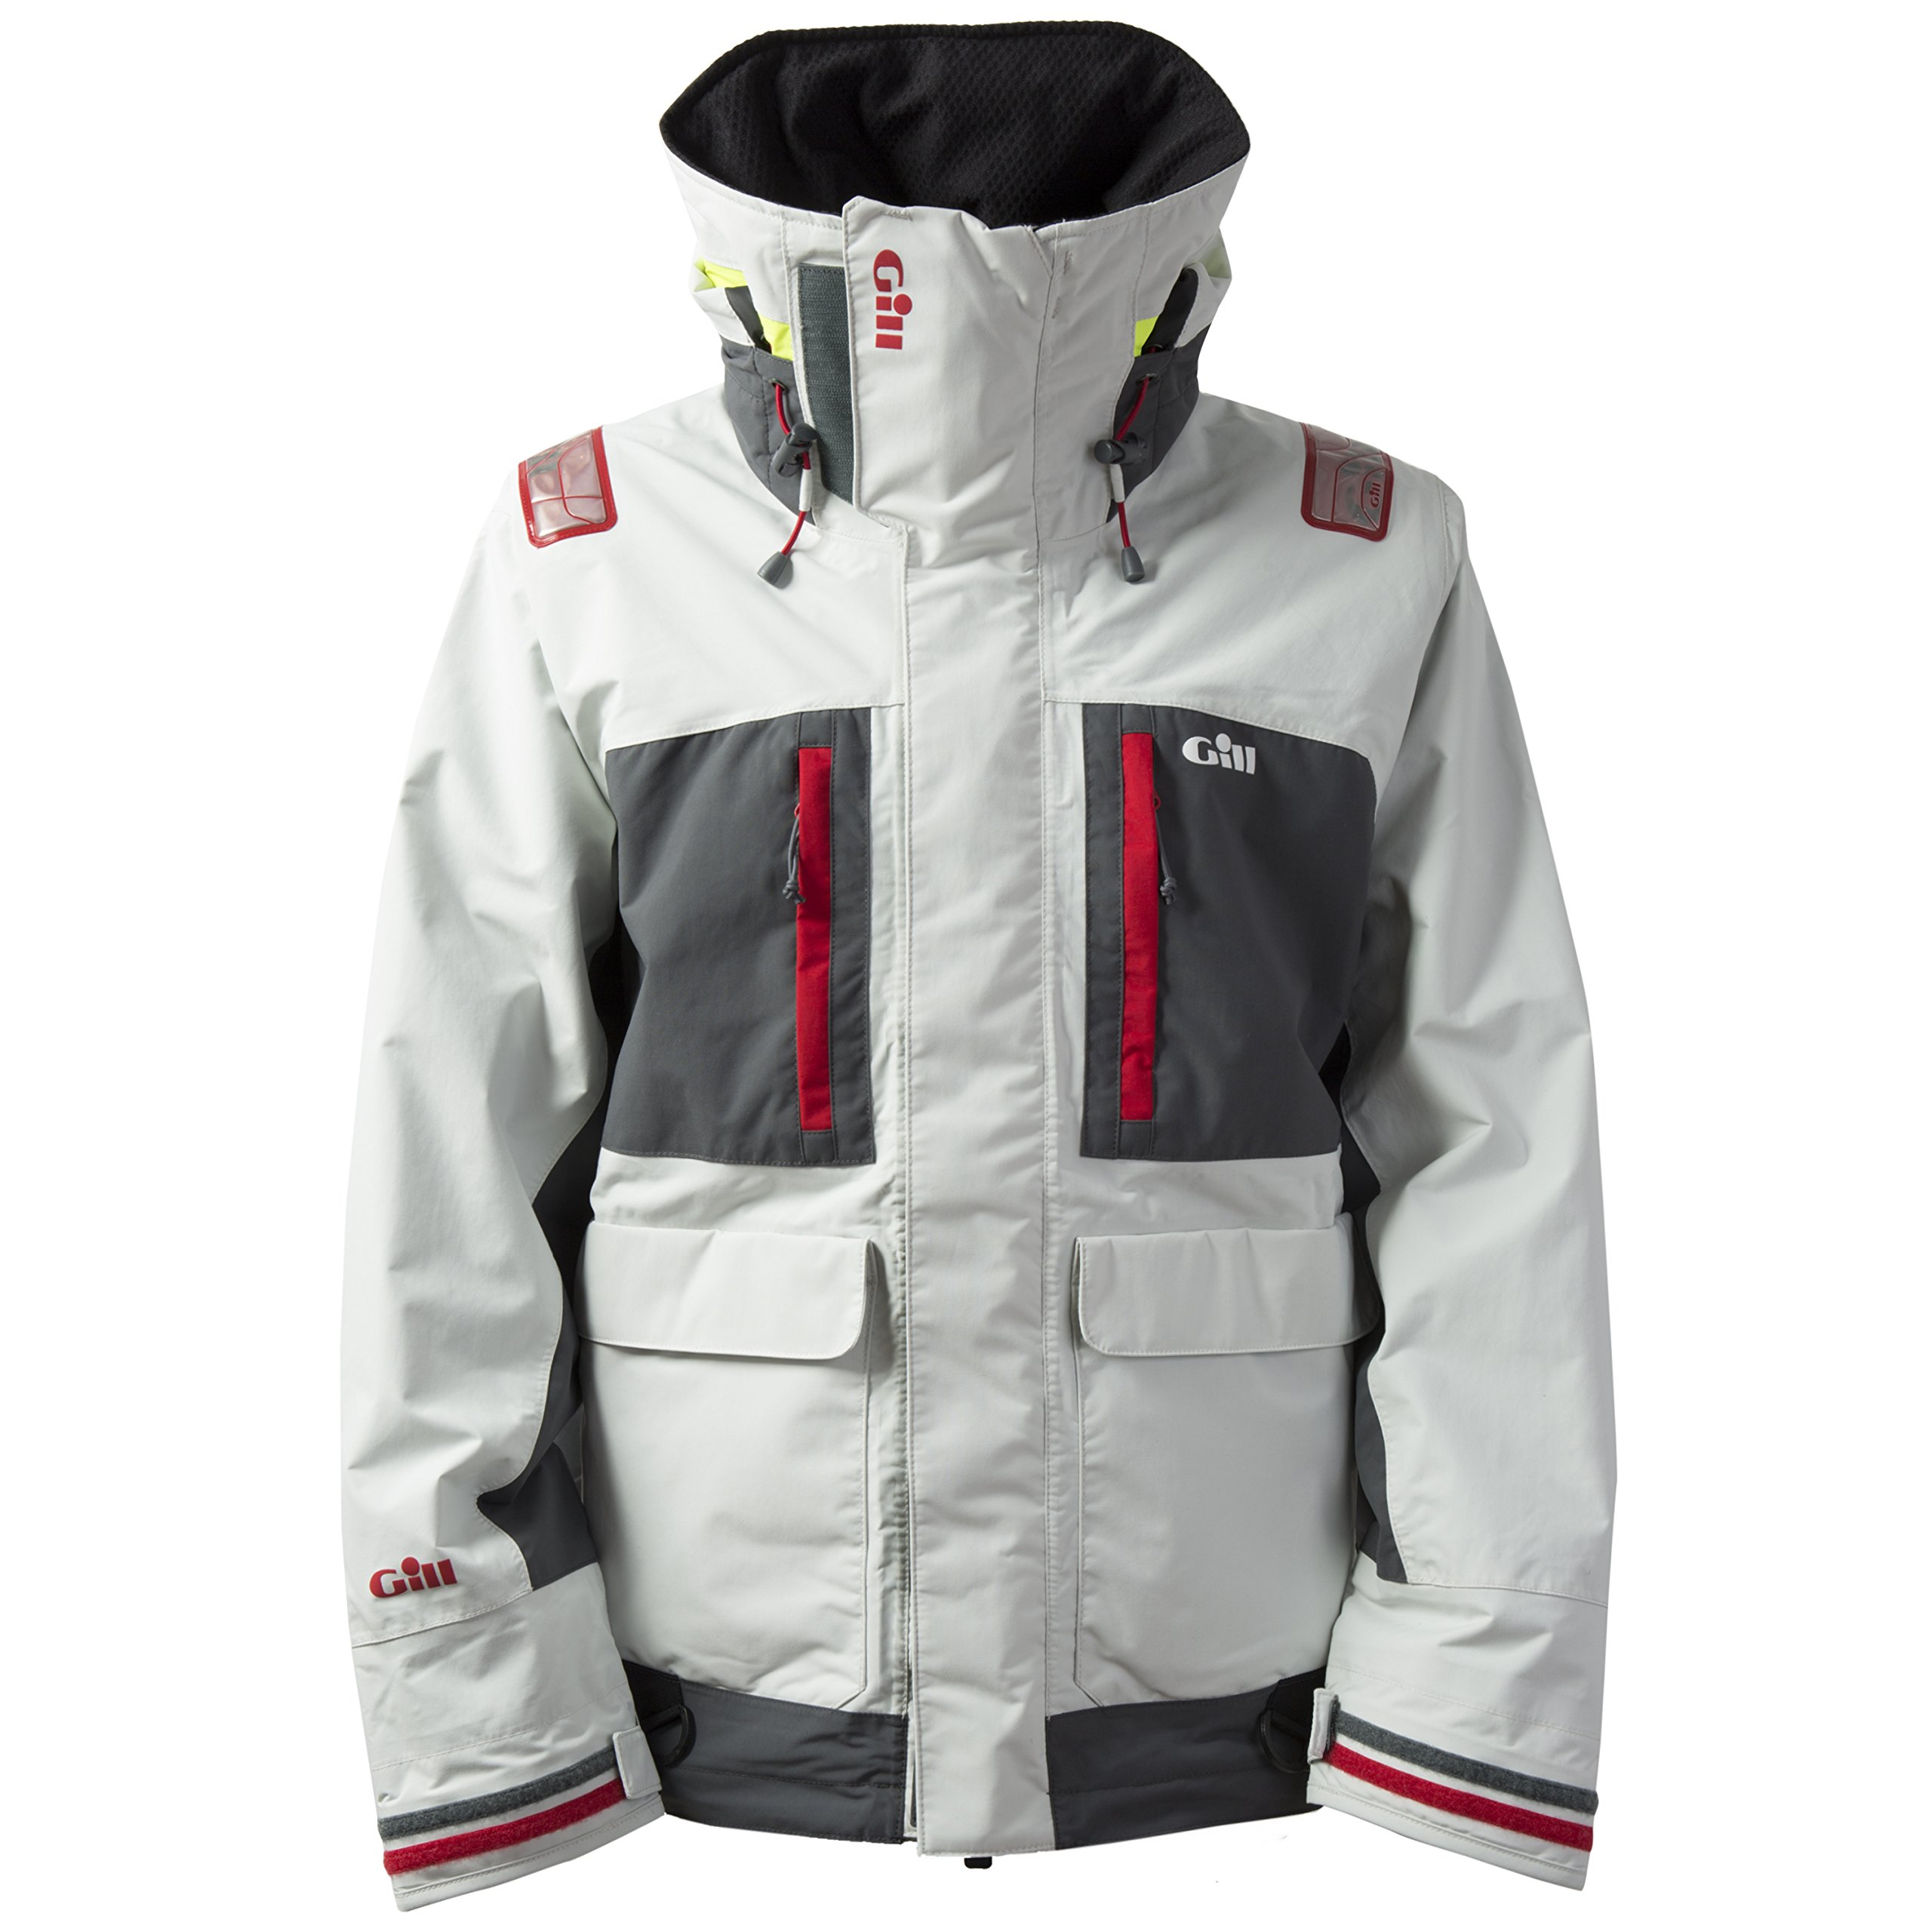 Gill Tournament Jacket (Large, Silver) by Gill